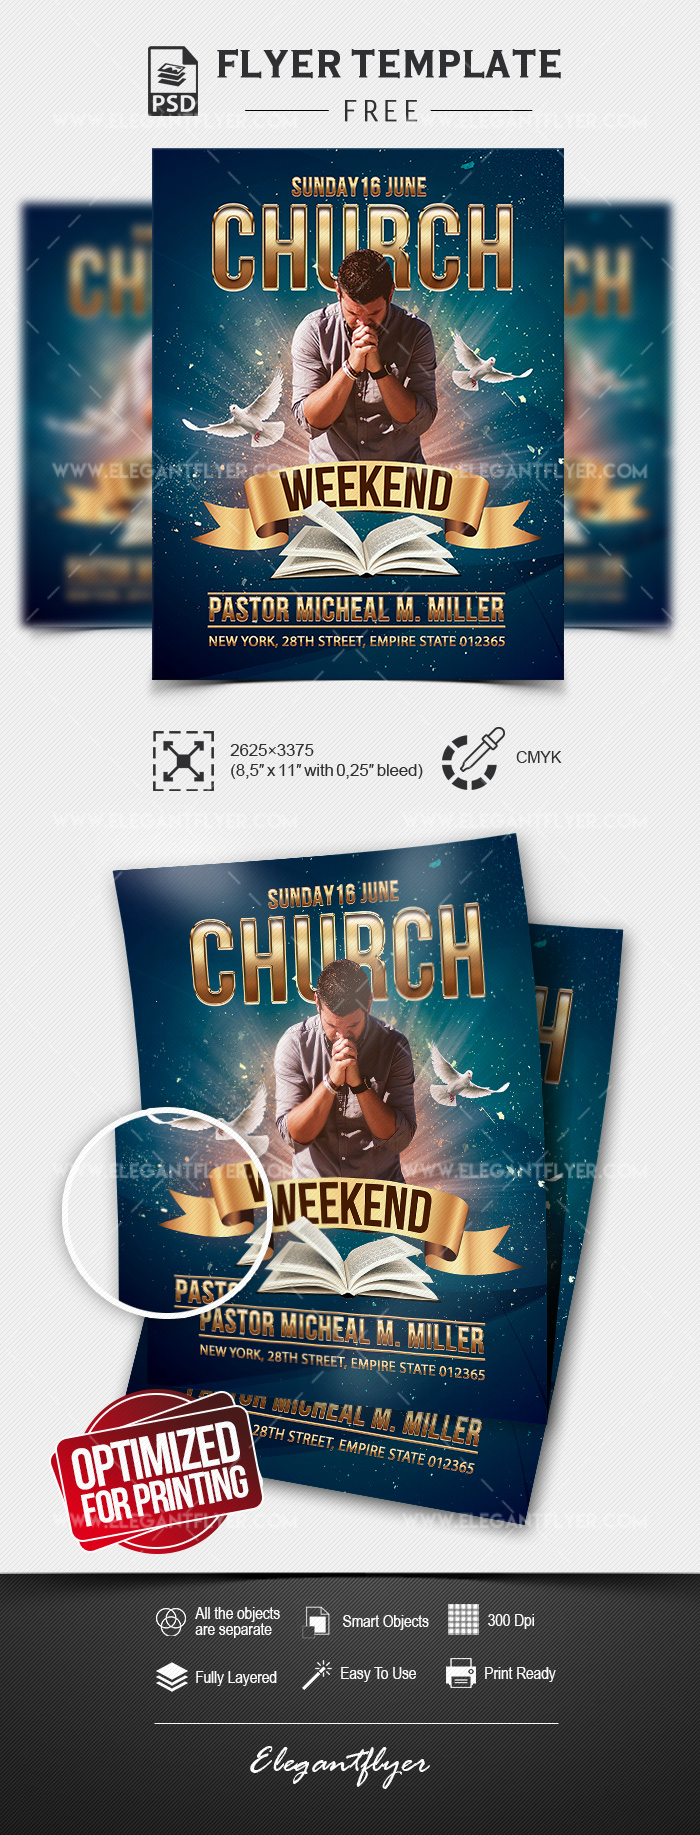 Weekend Church Event – Free Flyer Template in PSD